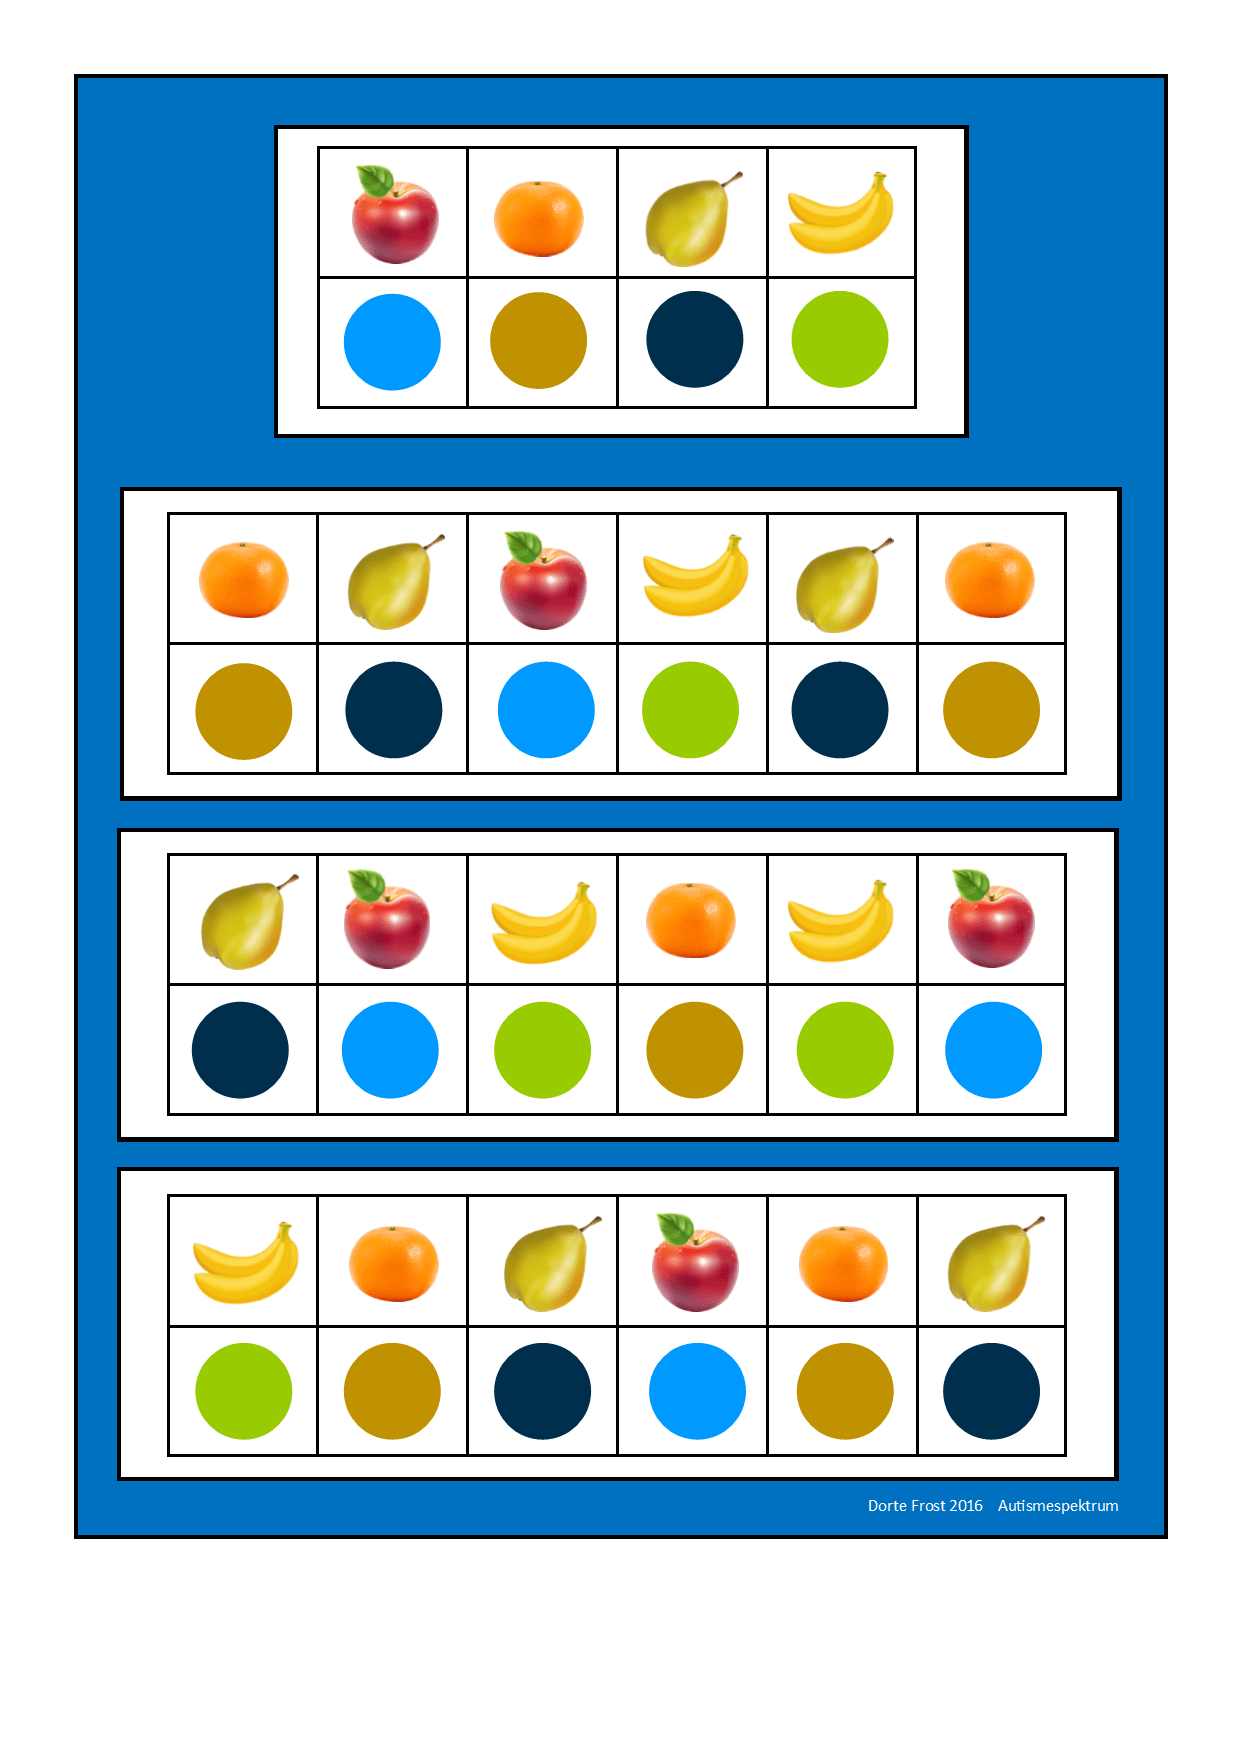 Tiles For The Two Fruit Visual Perception Game Find The